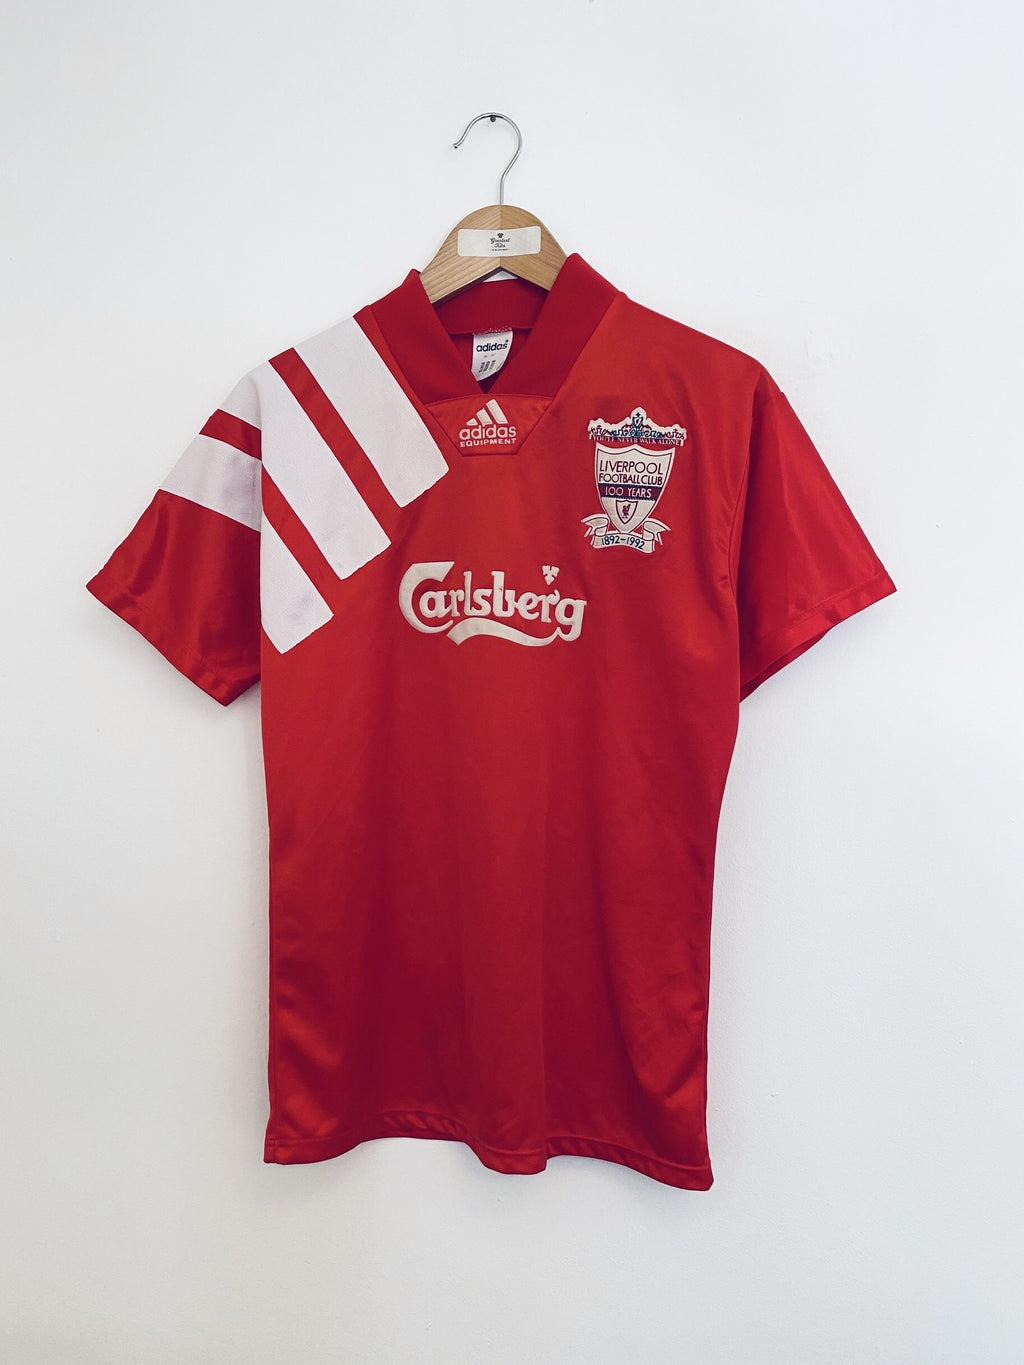 1992/93 Liverpool Home Centenary Shirt (S) 8/10